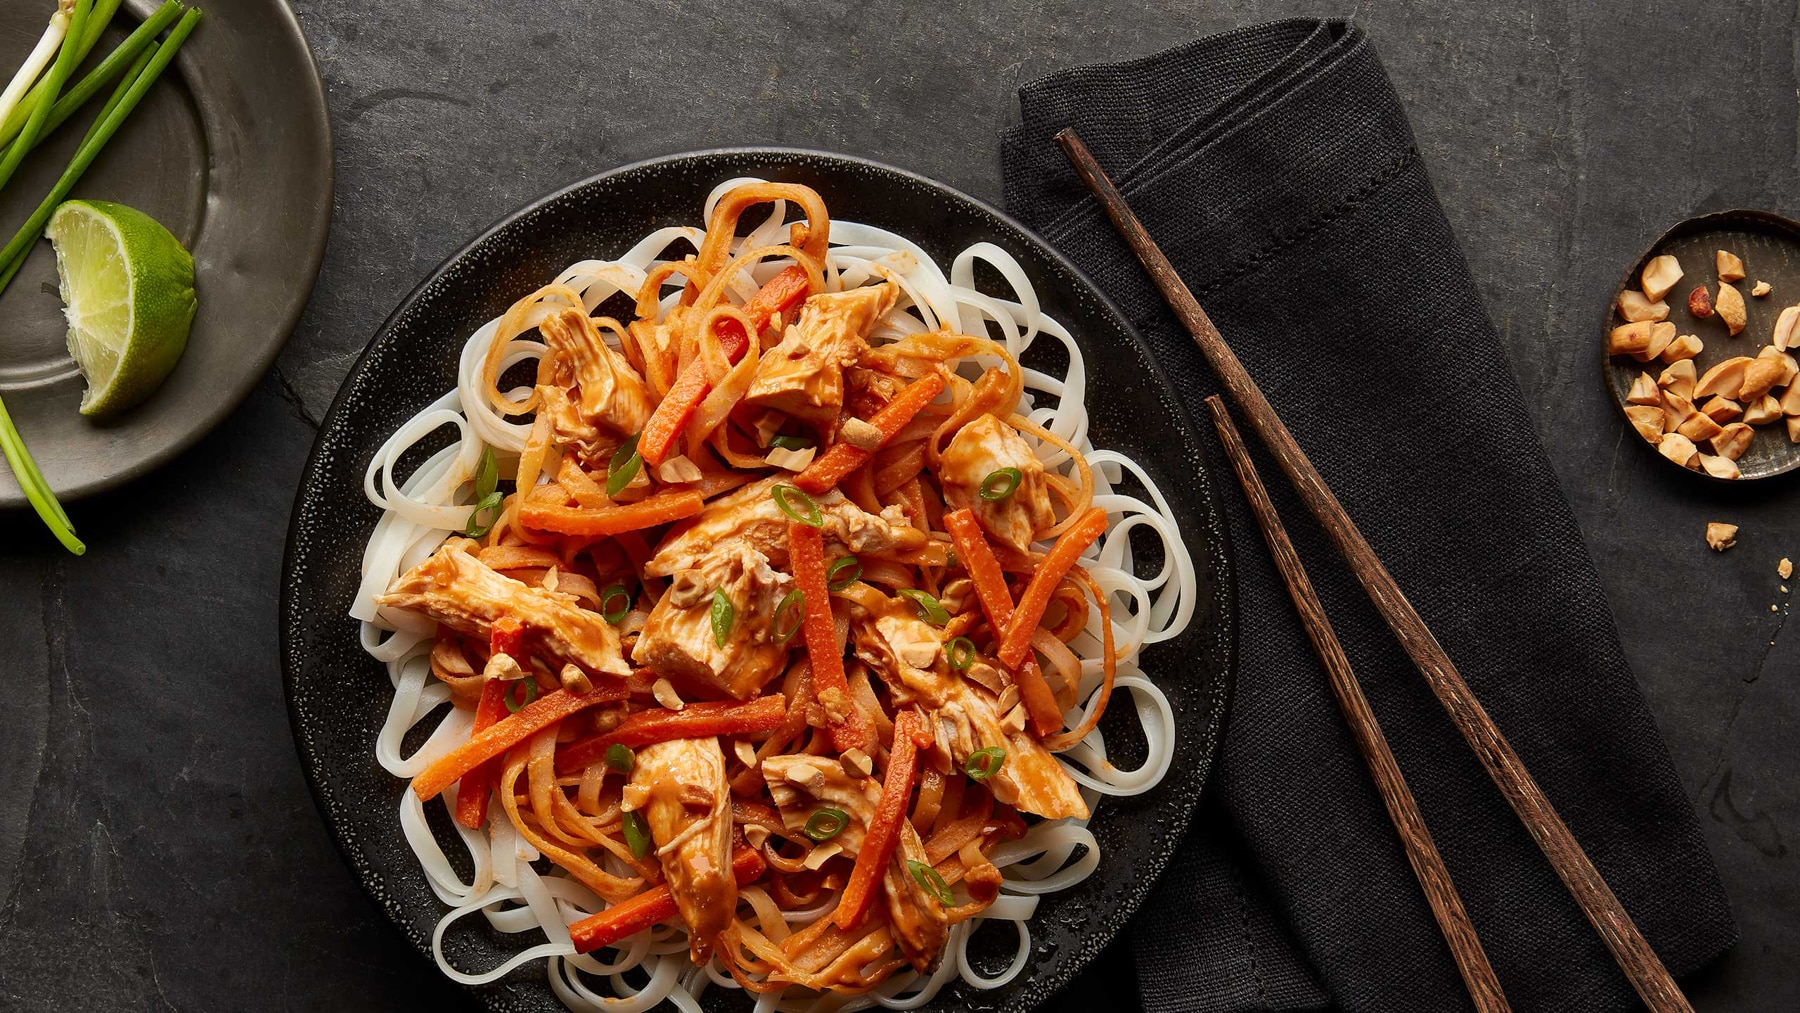 Noodles and topping on a plate with condiments and chopsticks to the side (© American Halal Company)